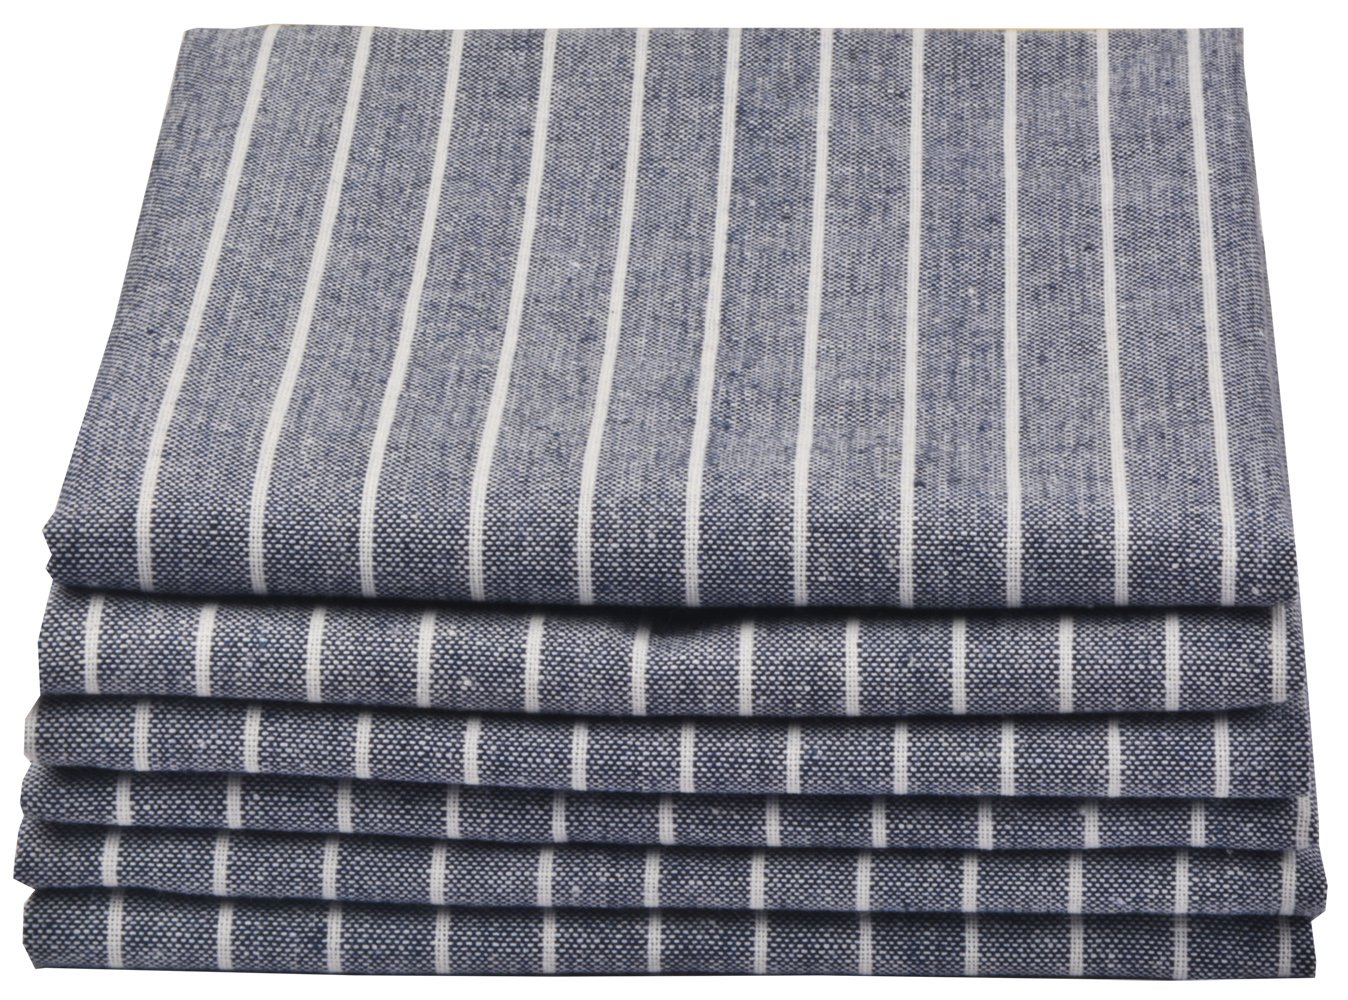 Sinland Linen Napkins Oversized Dinner Napkins Tailored with Mitered Corners and a Generous Hem 20Inch x 20Inch 6 Packs (Grey Blue) by Sinland (Image #1)